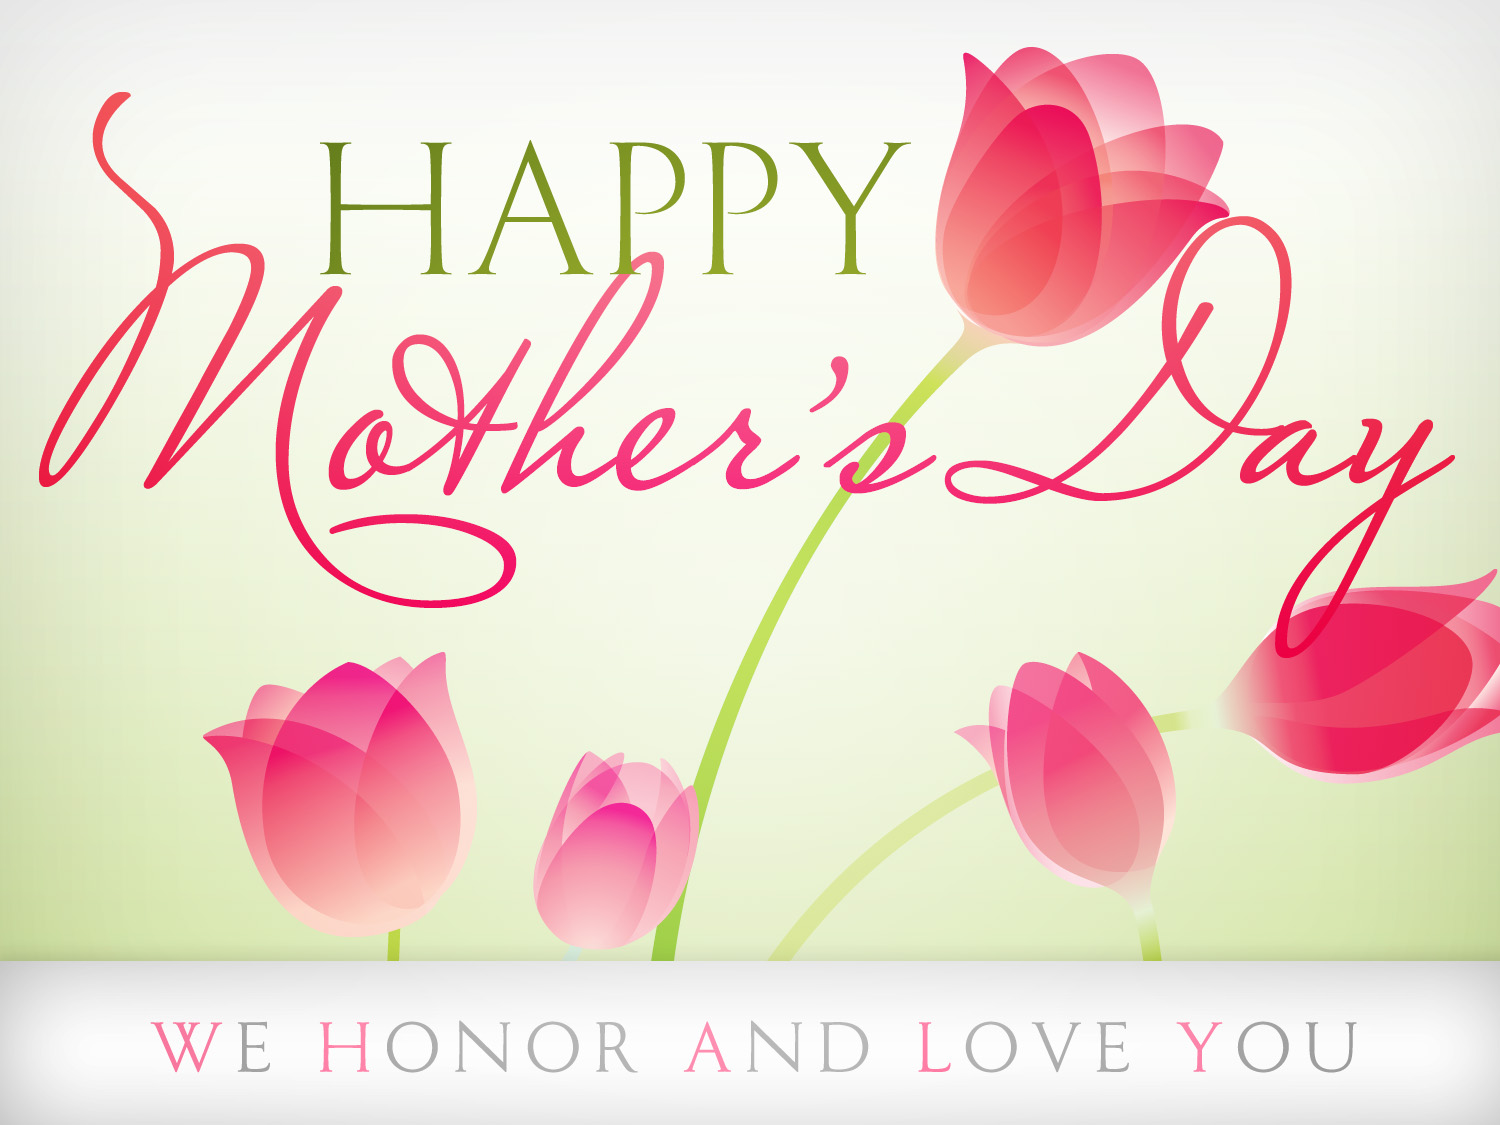 Happy Mothers Day - We Honor and Love You